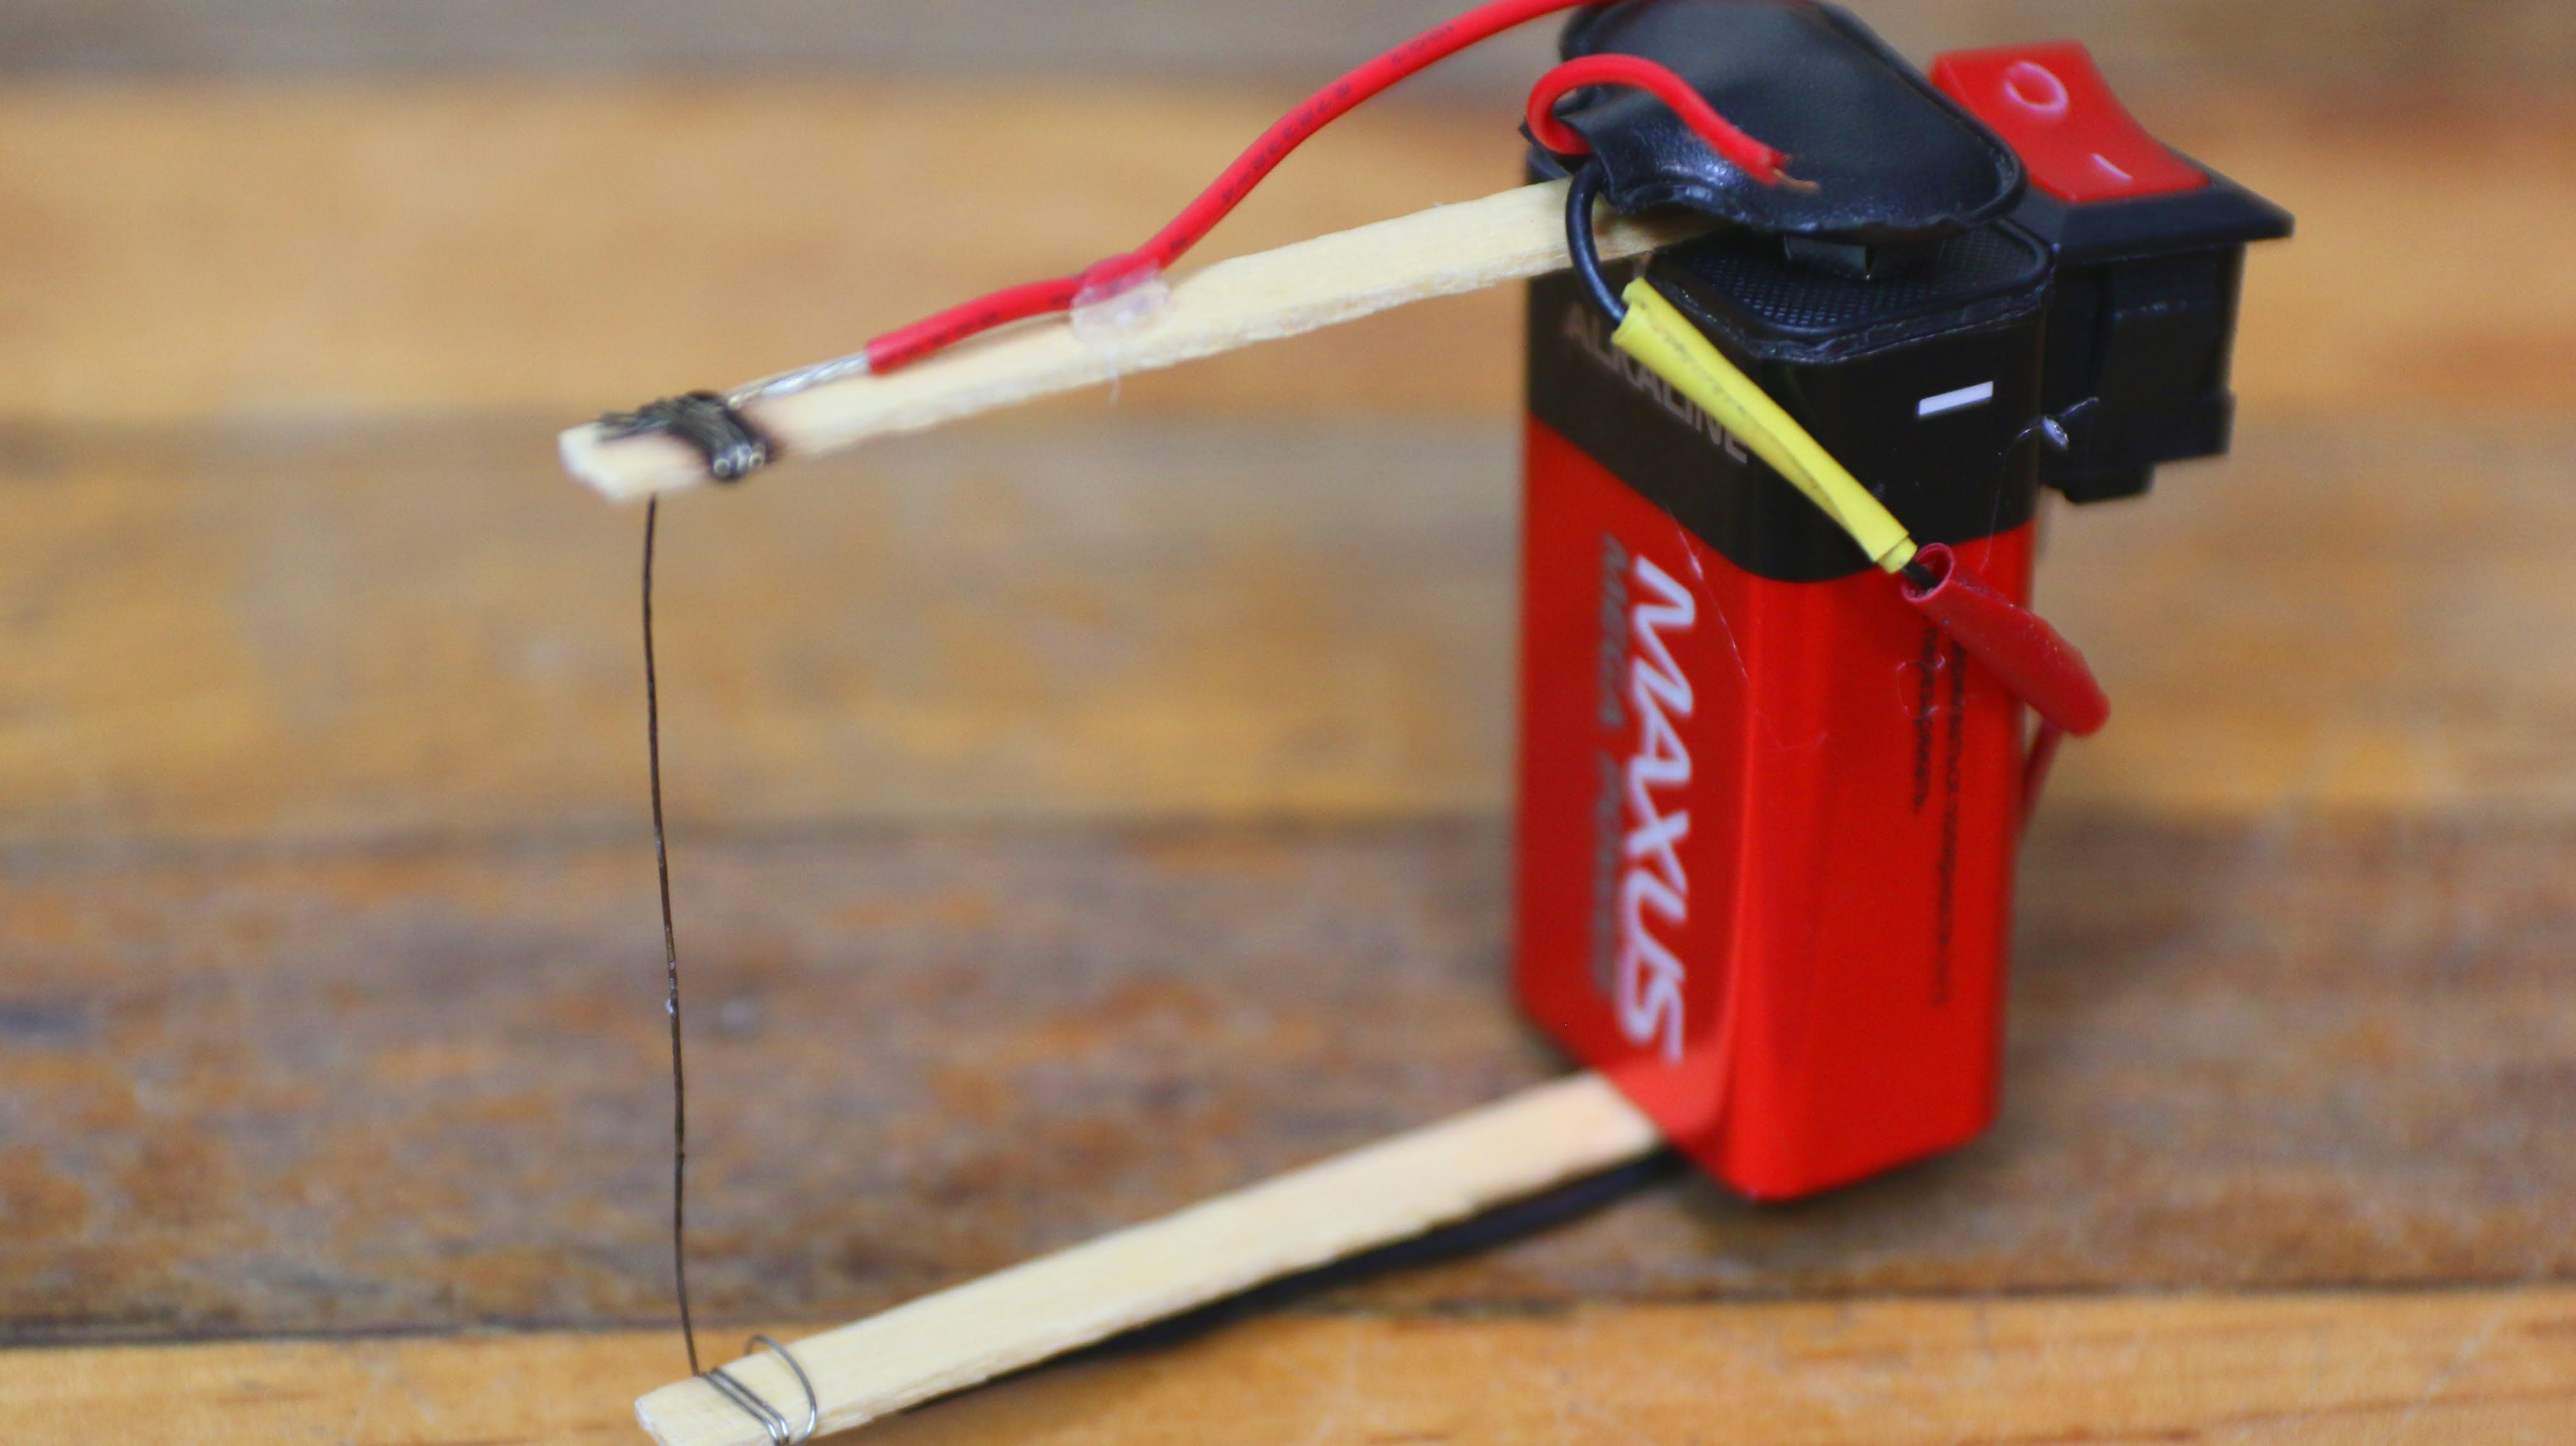 hight resolution of how to build a simple diy plastic foam cutter using a nine volt battery and some wire